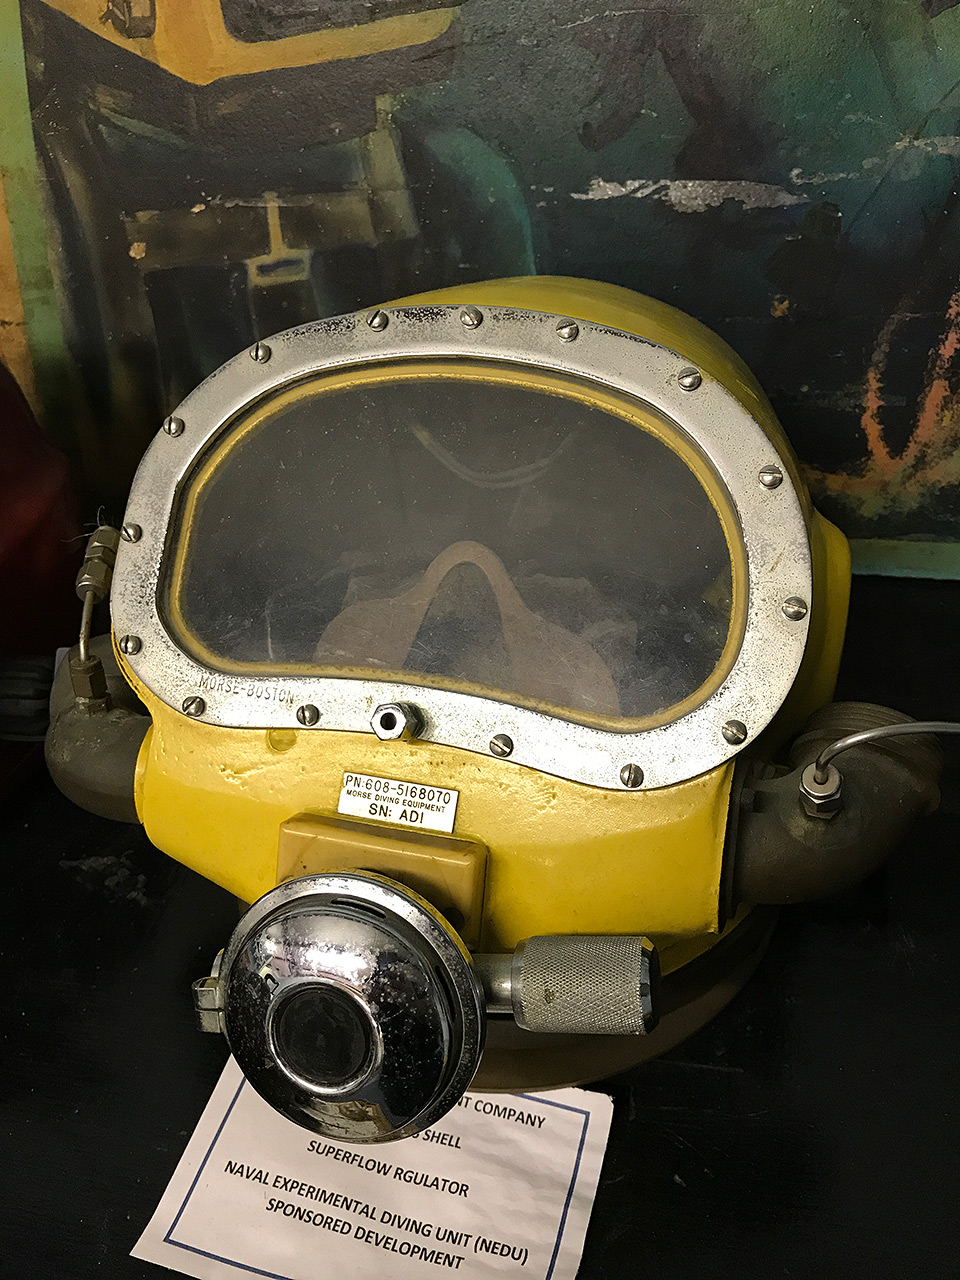 171023-man-in-the-sea-museum-sealab3-helmet